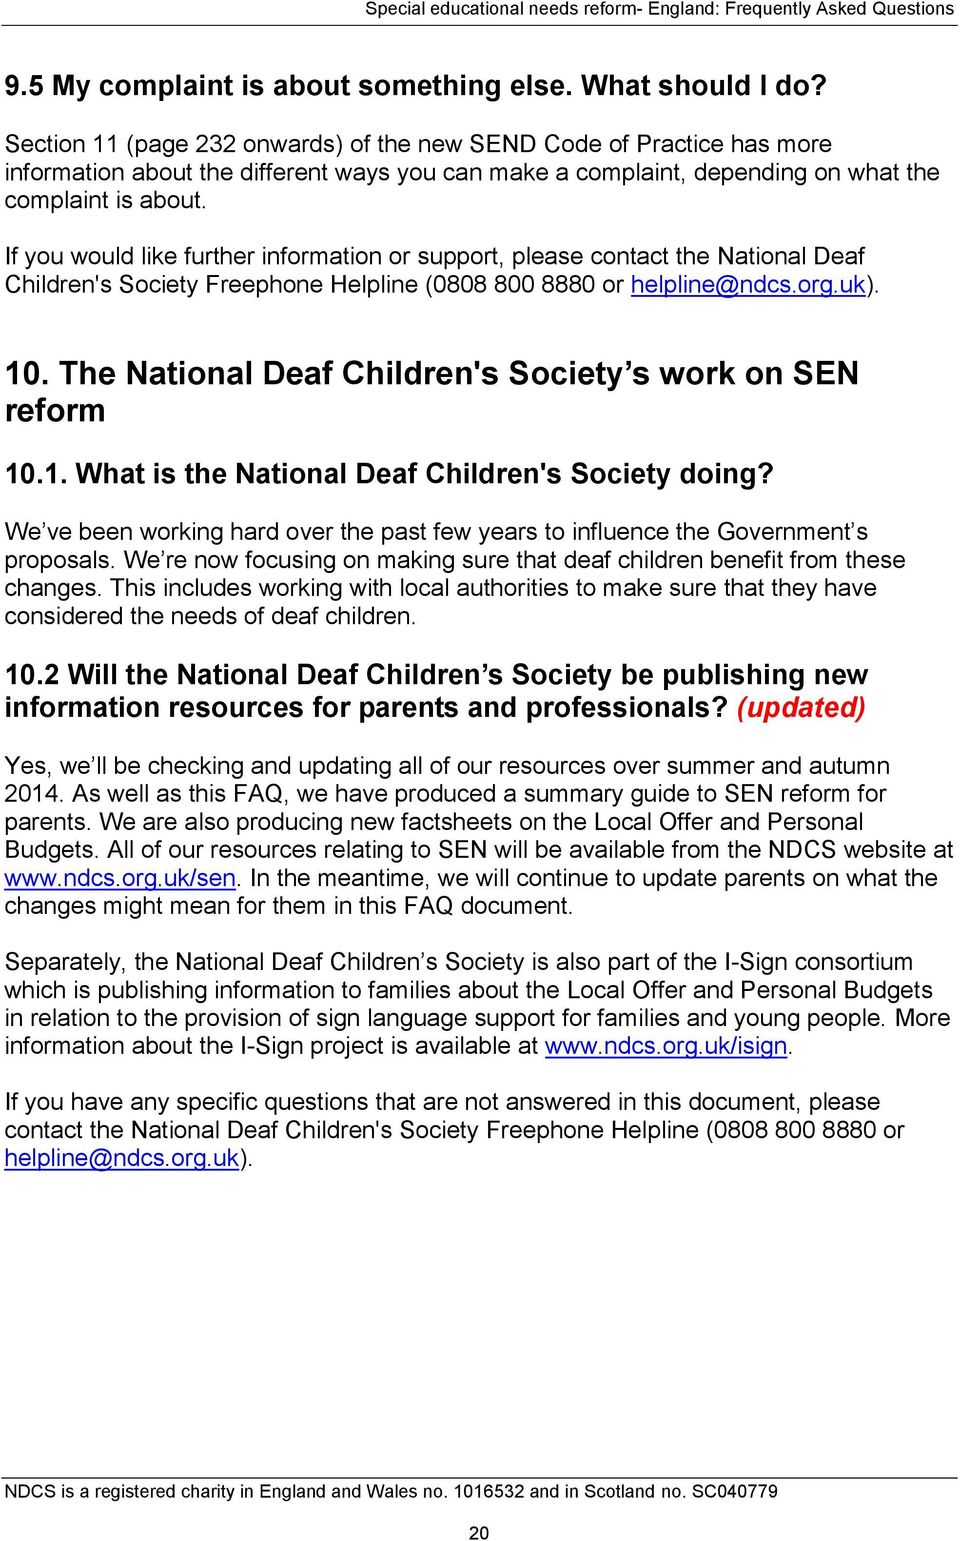 If you would like further information or support, please contact the National Deaf Children's Society Freephone Helpline (0808 800 8880 or helpline@ndcs.org.uk). 10.